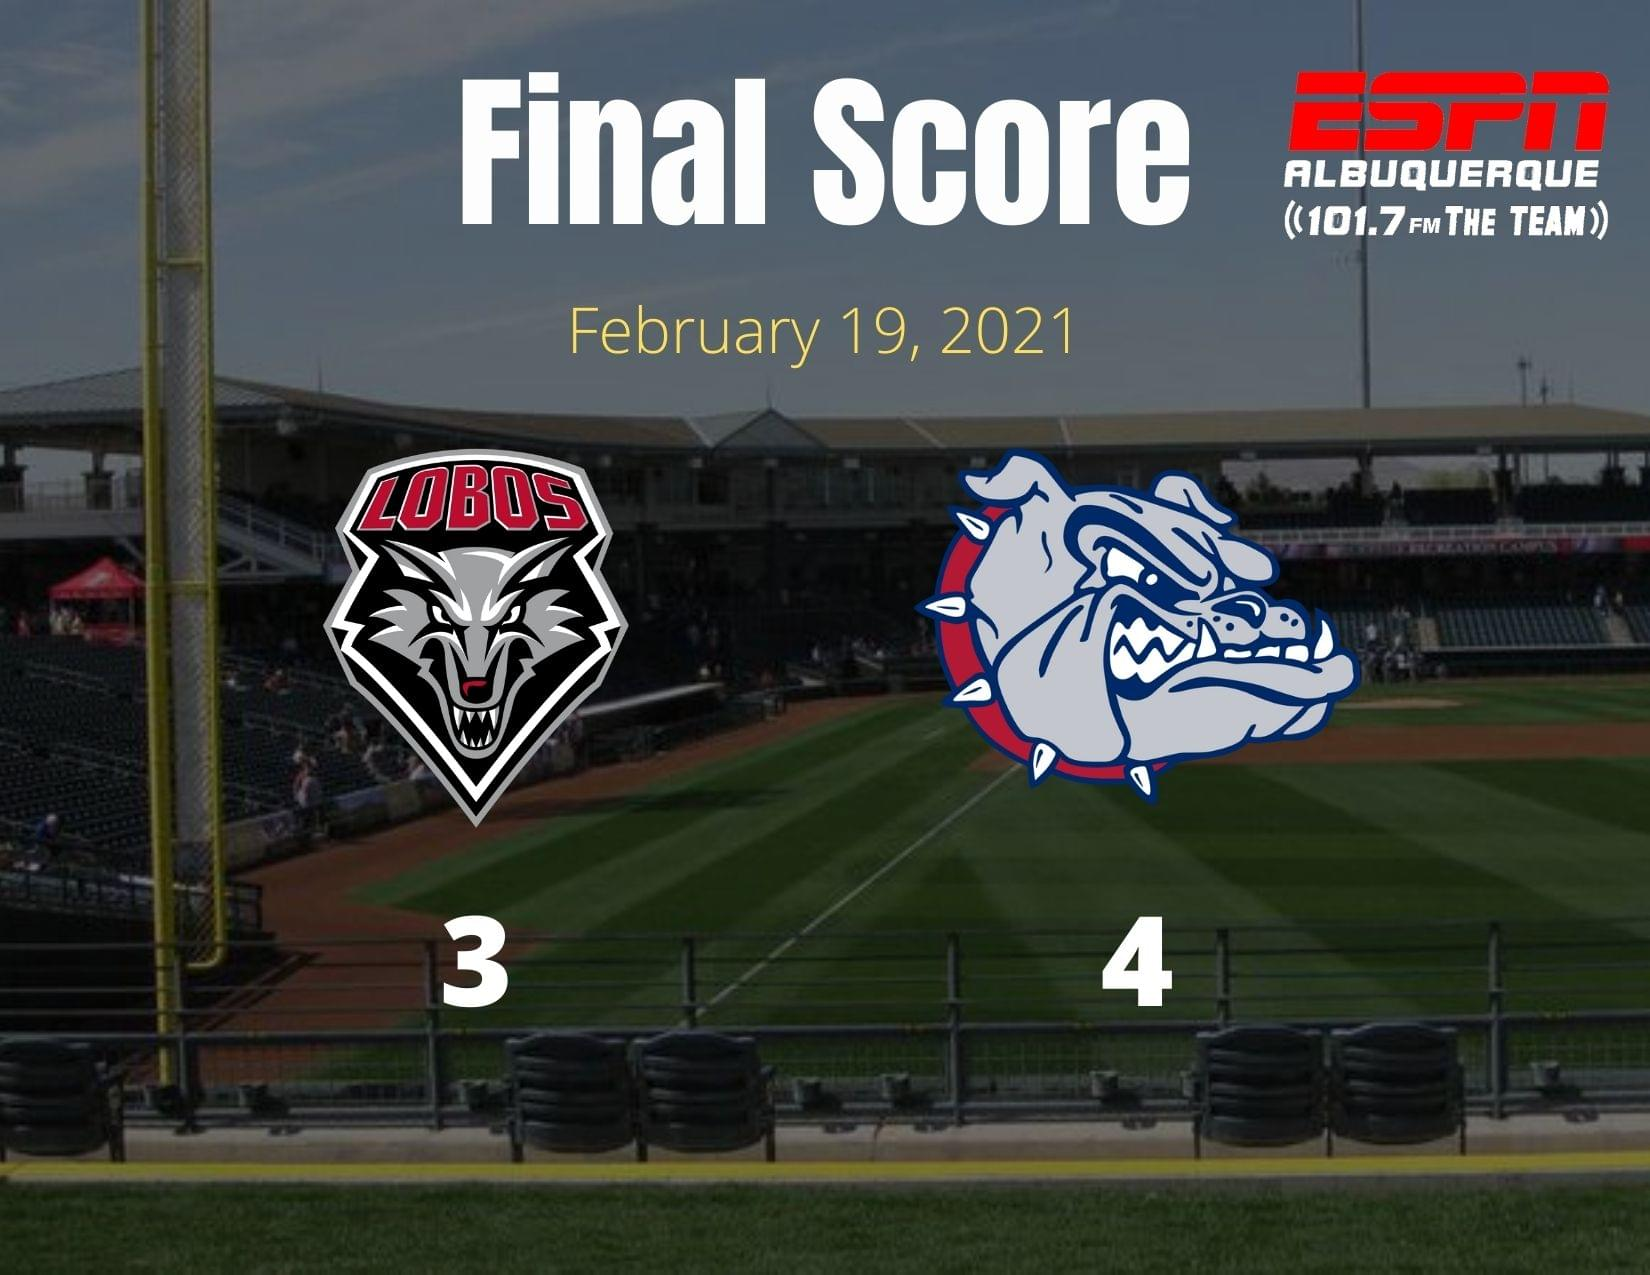 UNM Baseball: Bulldogs score two runs in the bottom of the ninth to beat Lobos 4-3